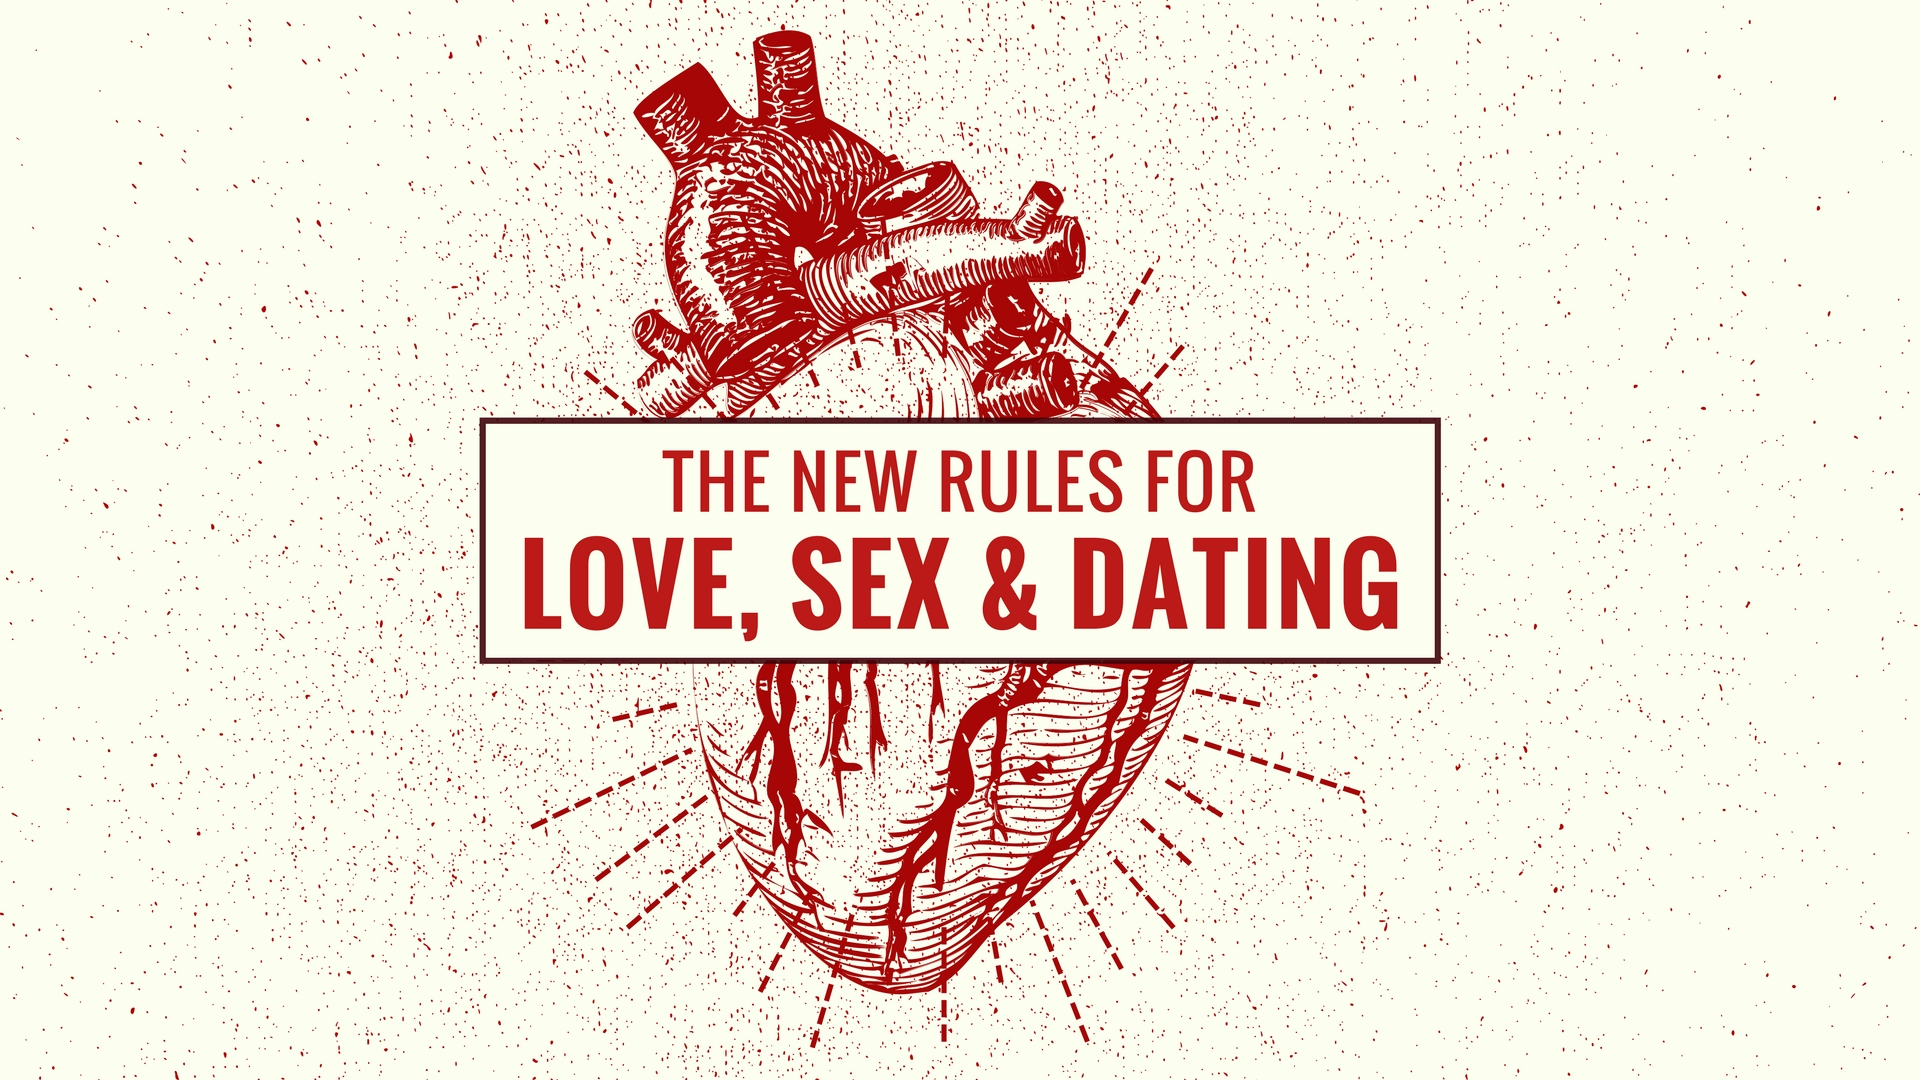 FINAL - The New Rules for Love, Sex & Dating.jpg